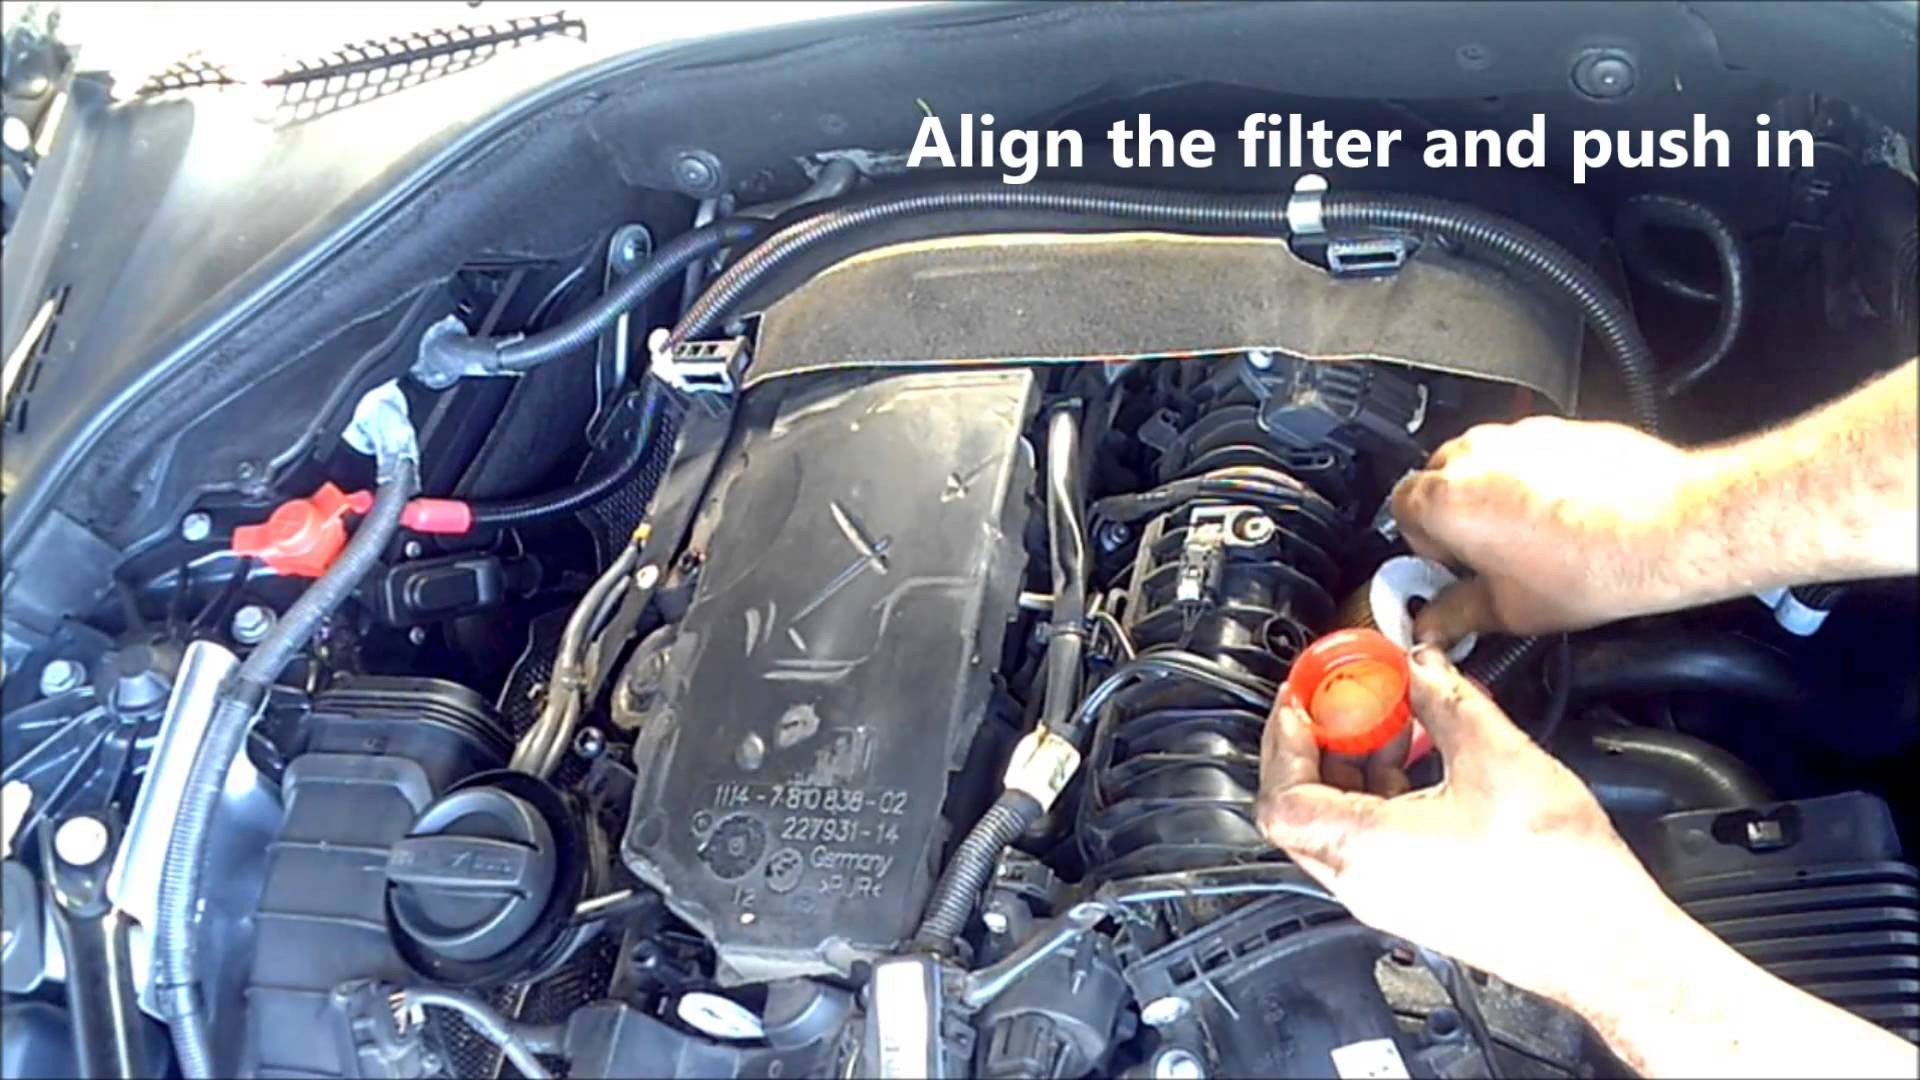 Fuel Filter Diagram Bmw 520d Diesel Air Oil Change 2012 Ford Fiesta Service And Reset F10 Of